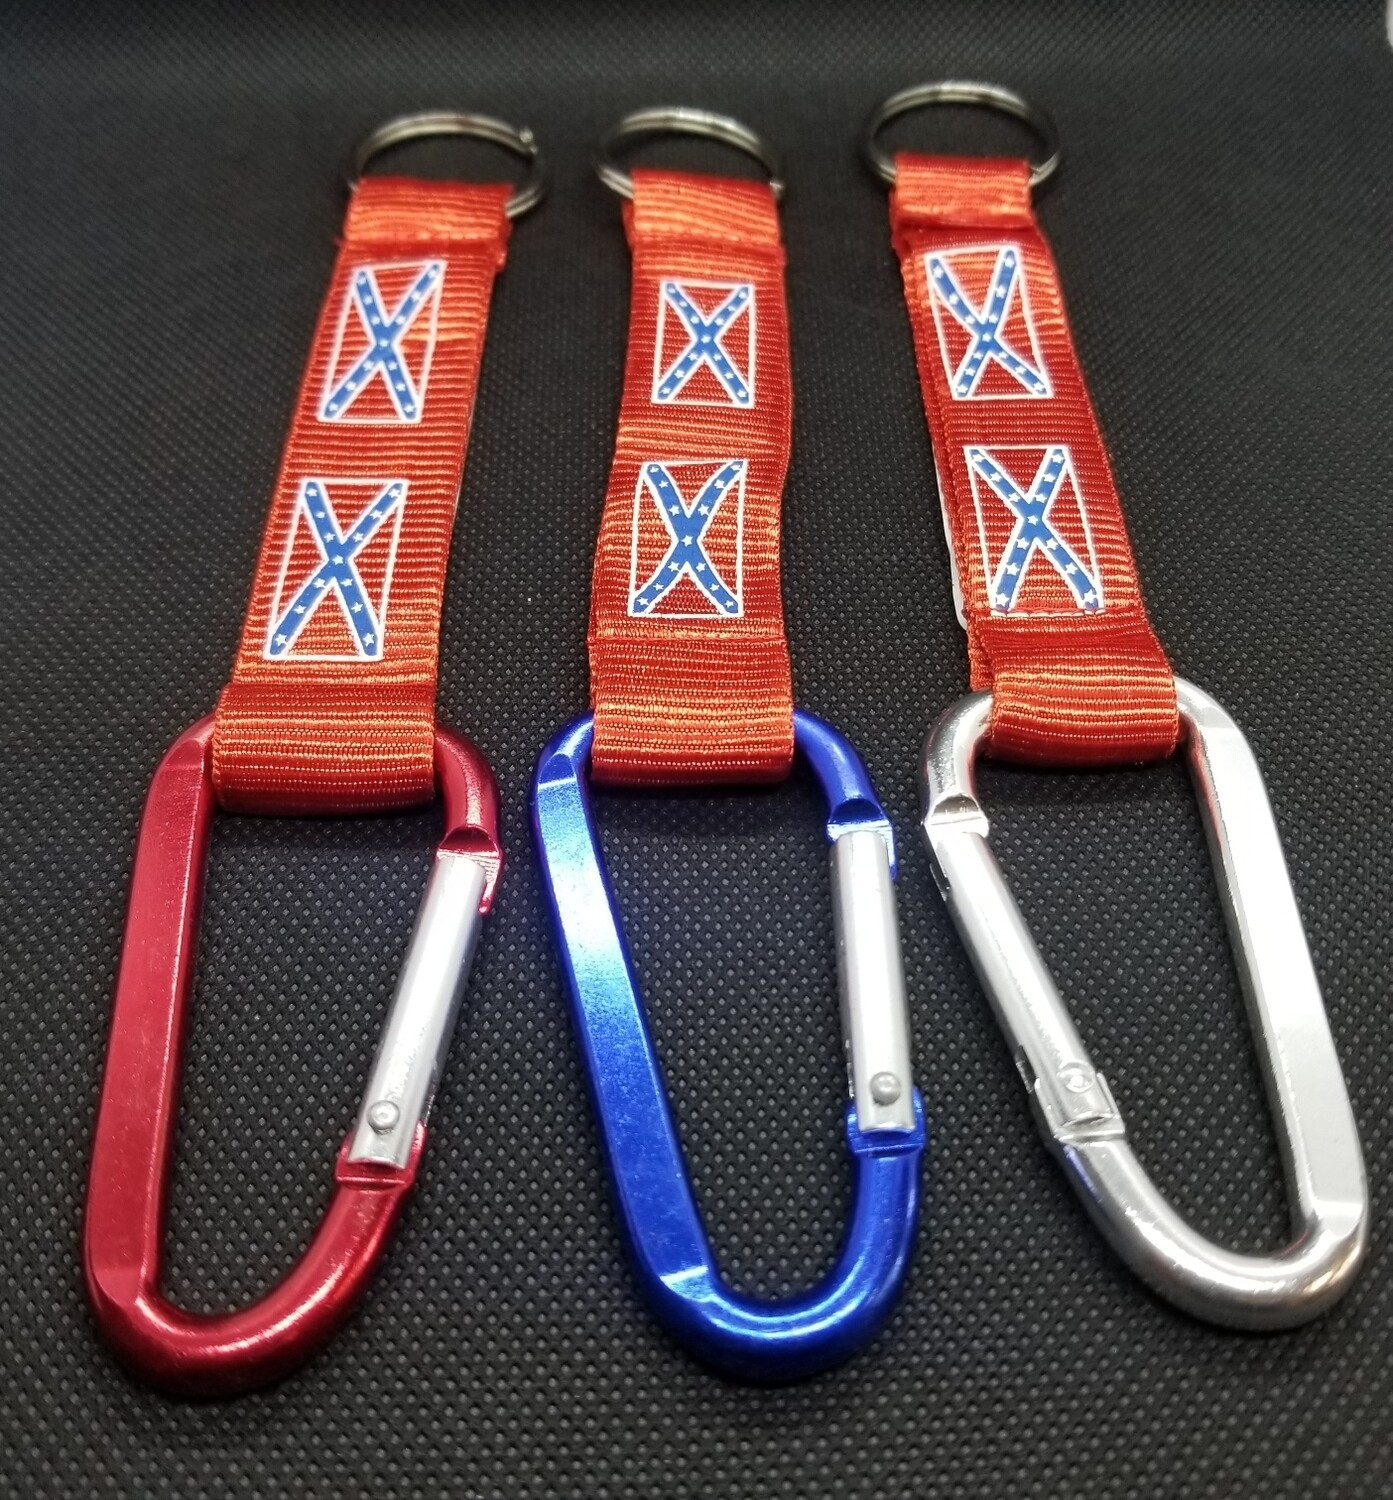 Confederate Carabiner Key Chain - 3 Colors